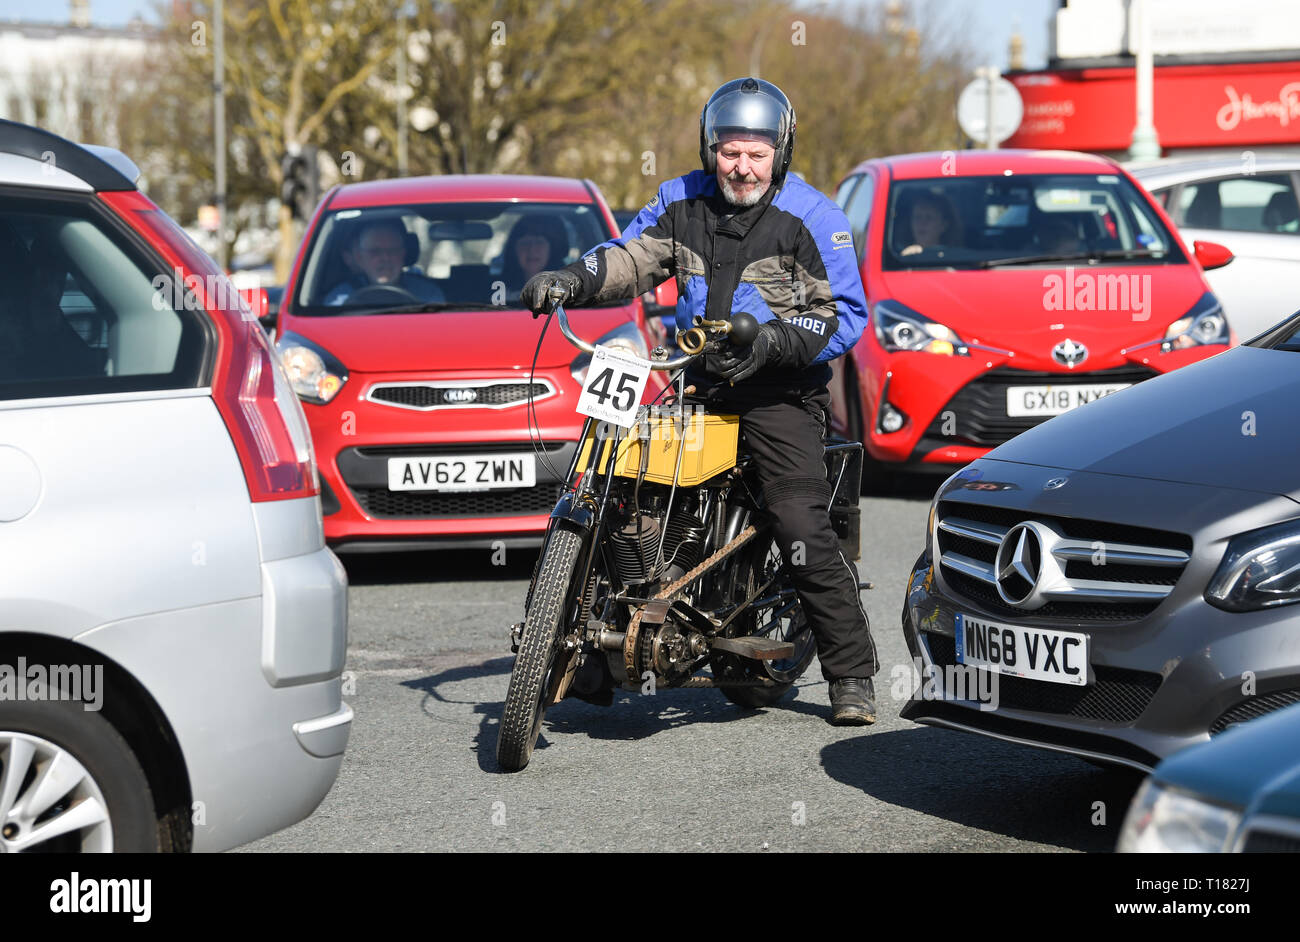 Brighton, UK. 24th March 2019. John Moore on his 1908 BAT weaves through the traffic as he nears the finish of the 80th Anniversary Pioneer Run for pre 2015 veteran motorcycles in Brighton. The run organised by the Sunbeam Motor Cycle Club begins on the Epsom Downs in Surrey and finishes on Madeira Drive on Brighton seafront Credit: Simon Dack/Alamy Live News Stock Photo